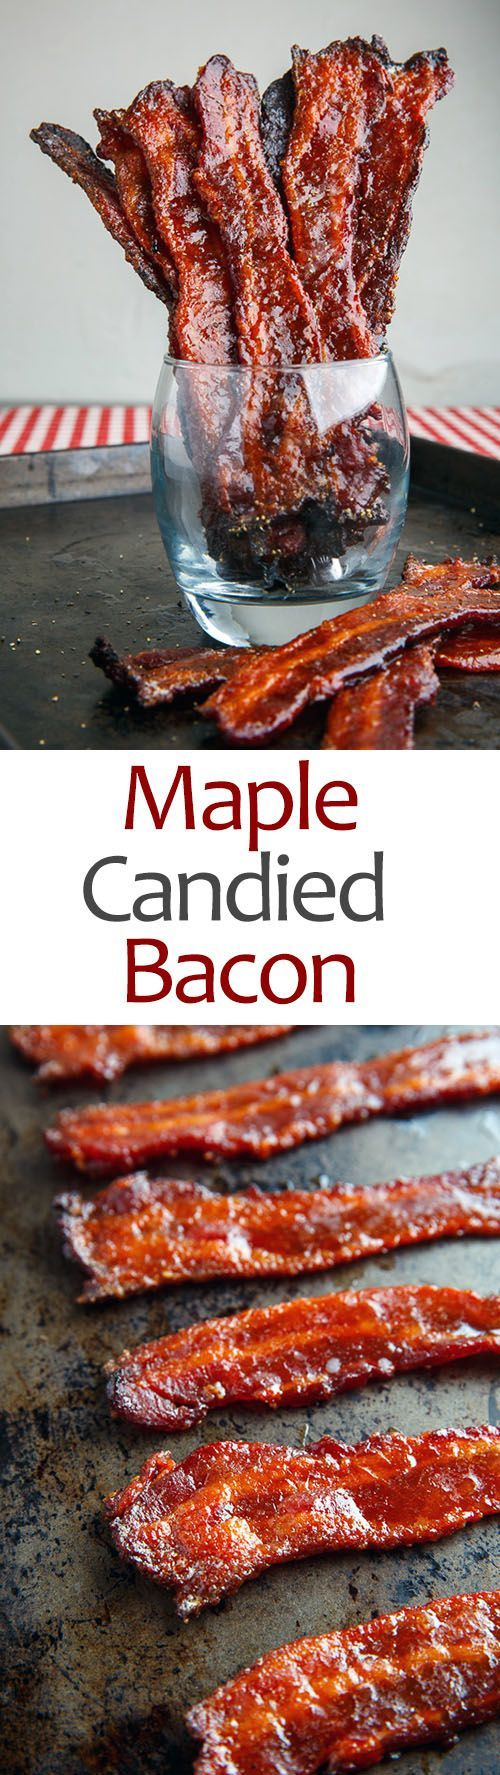 Maple Candied Bacon